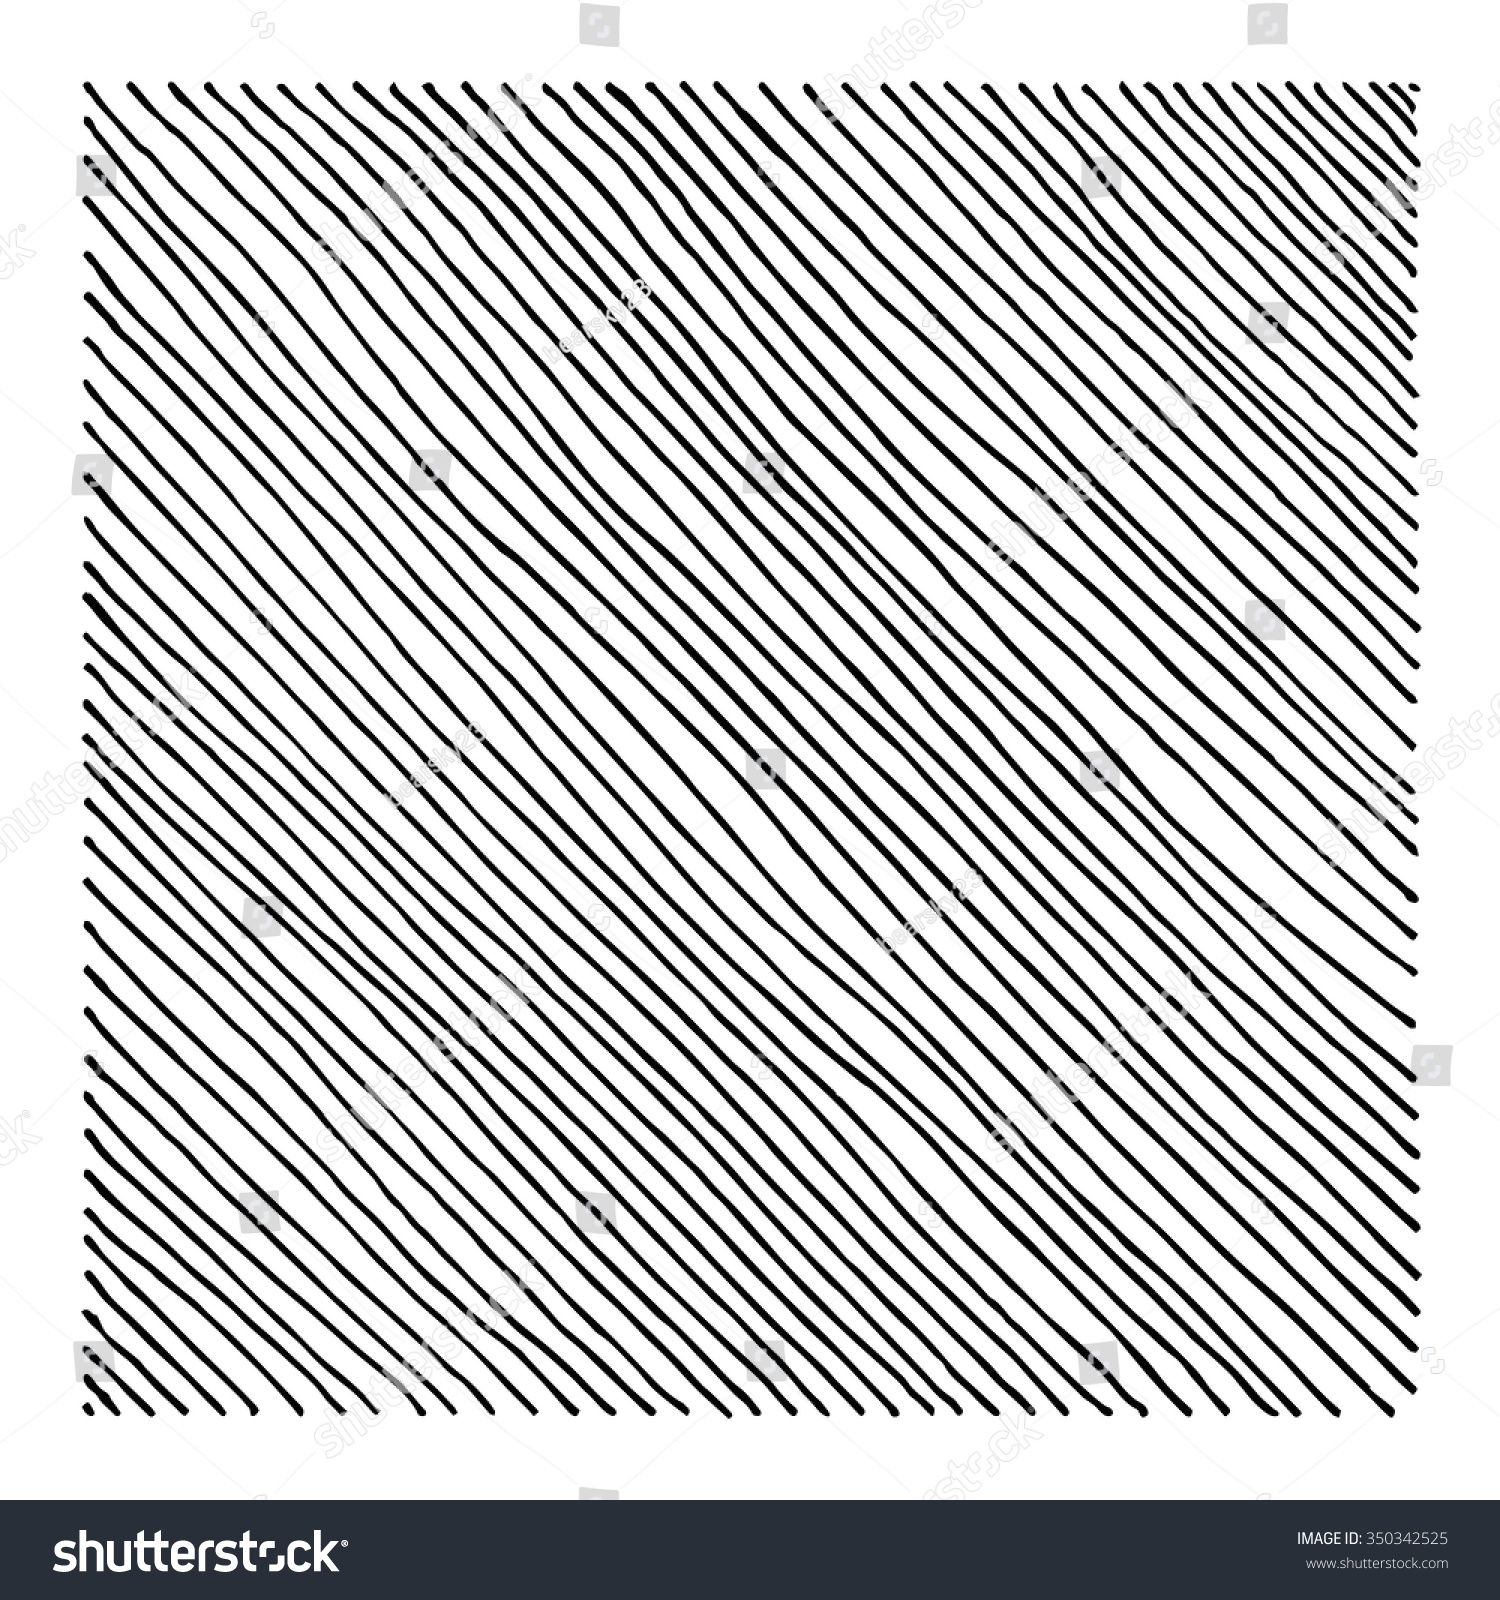 Drawing Lines Hand : Hand drawing lines pixshark images galleries